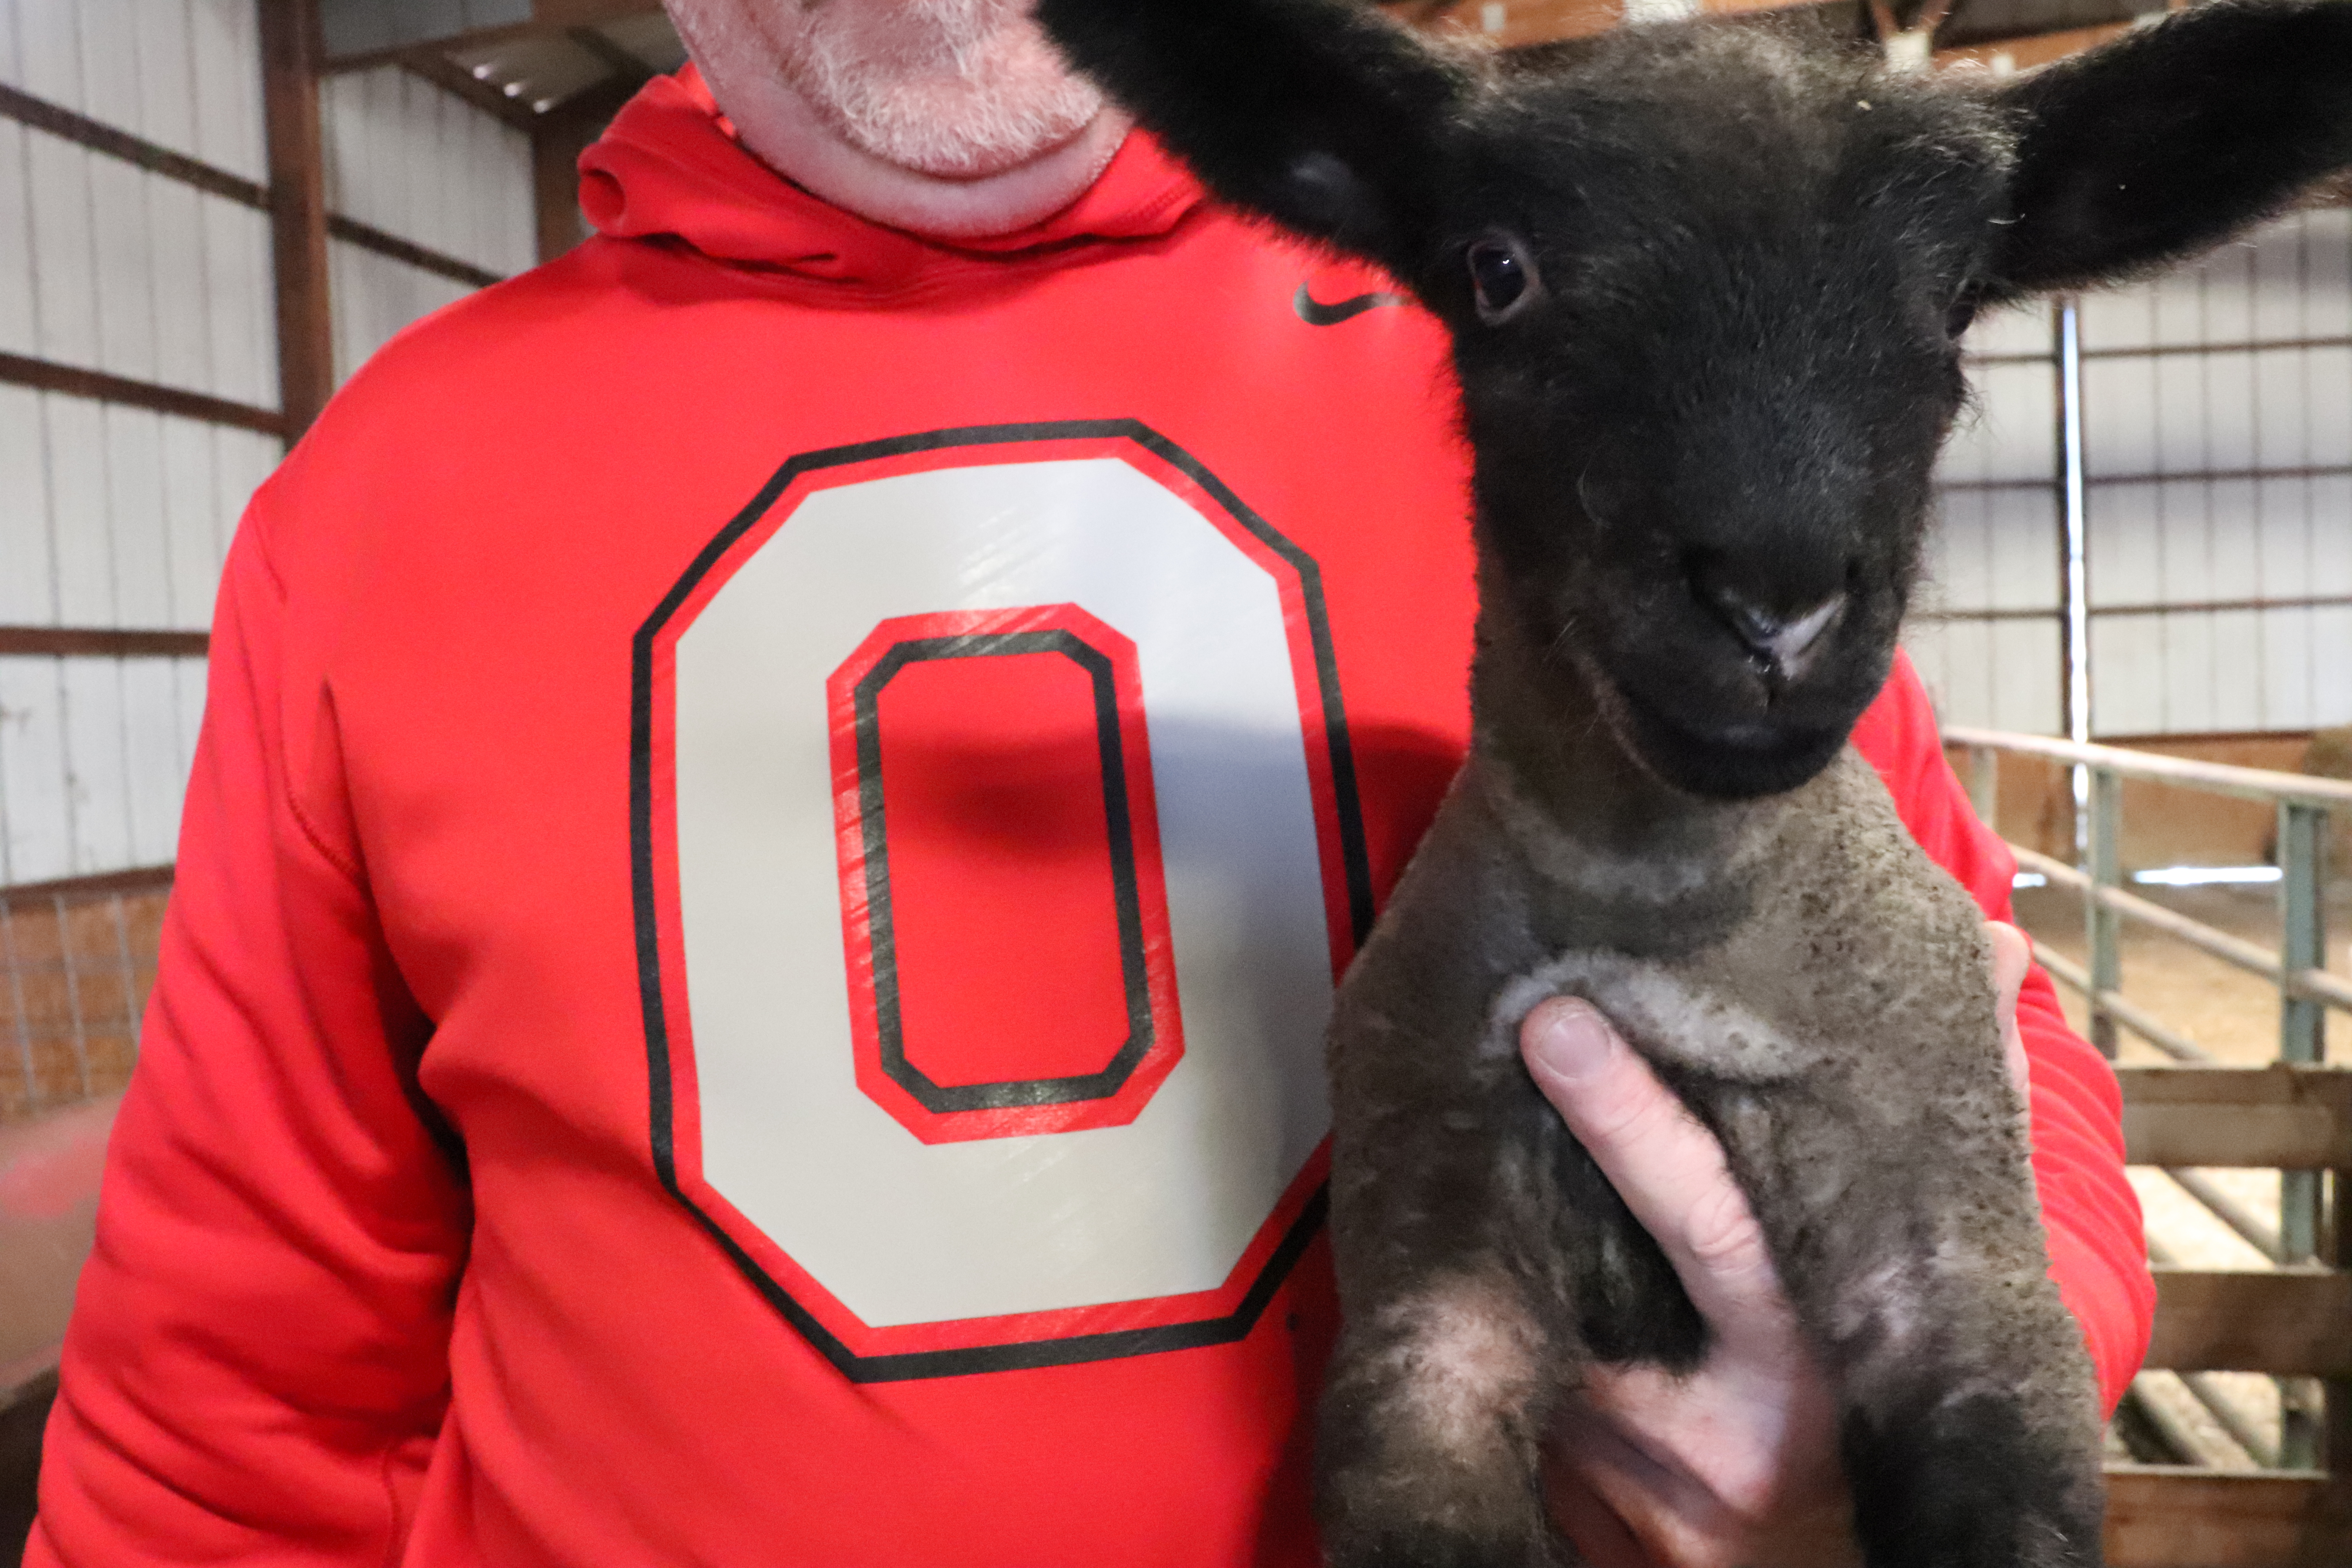 An OSU fan holding a young lamb.